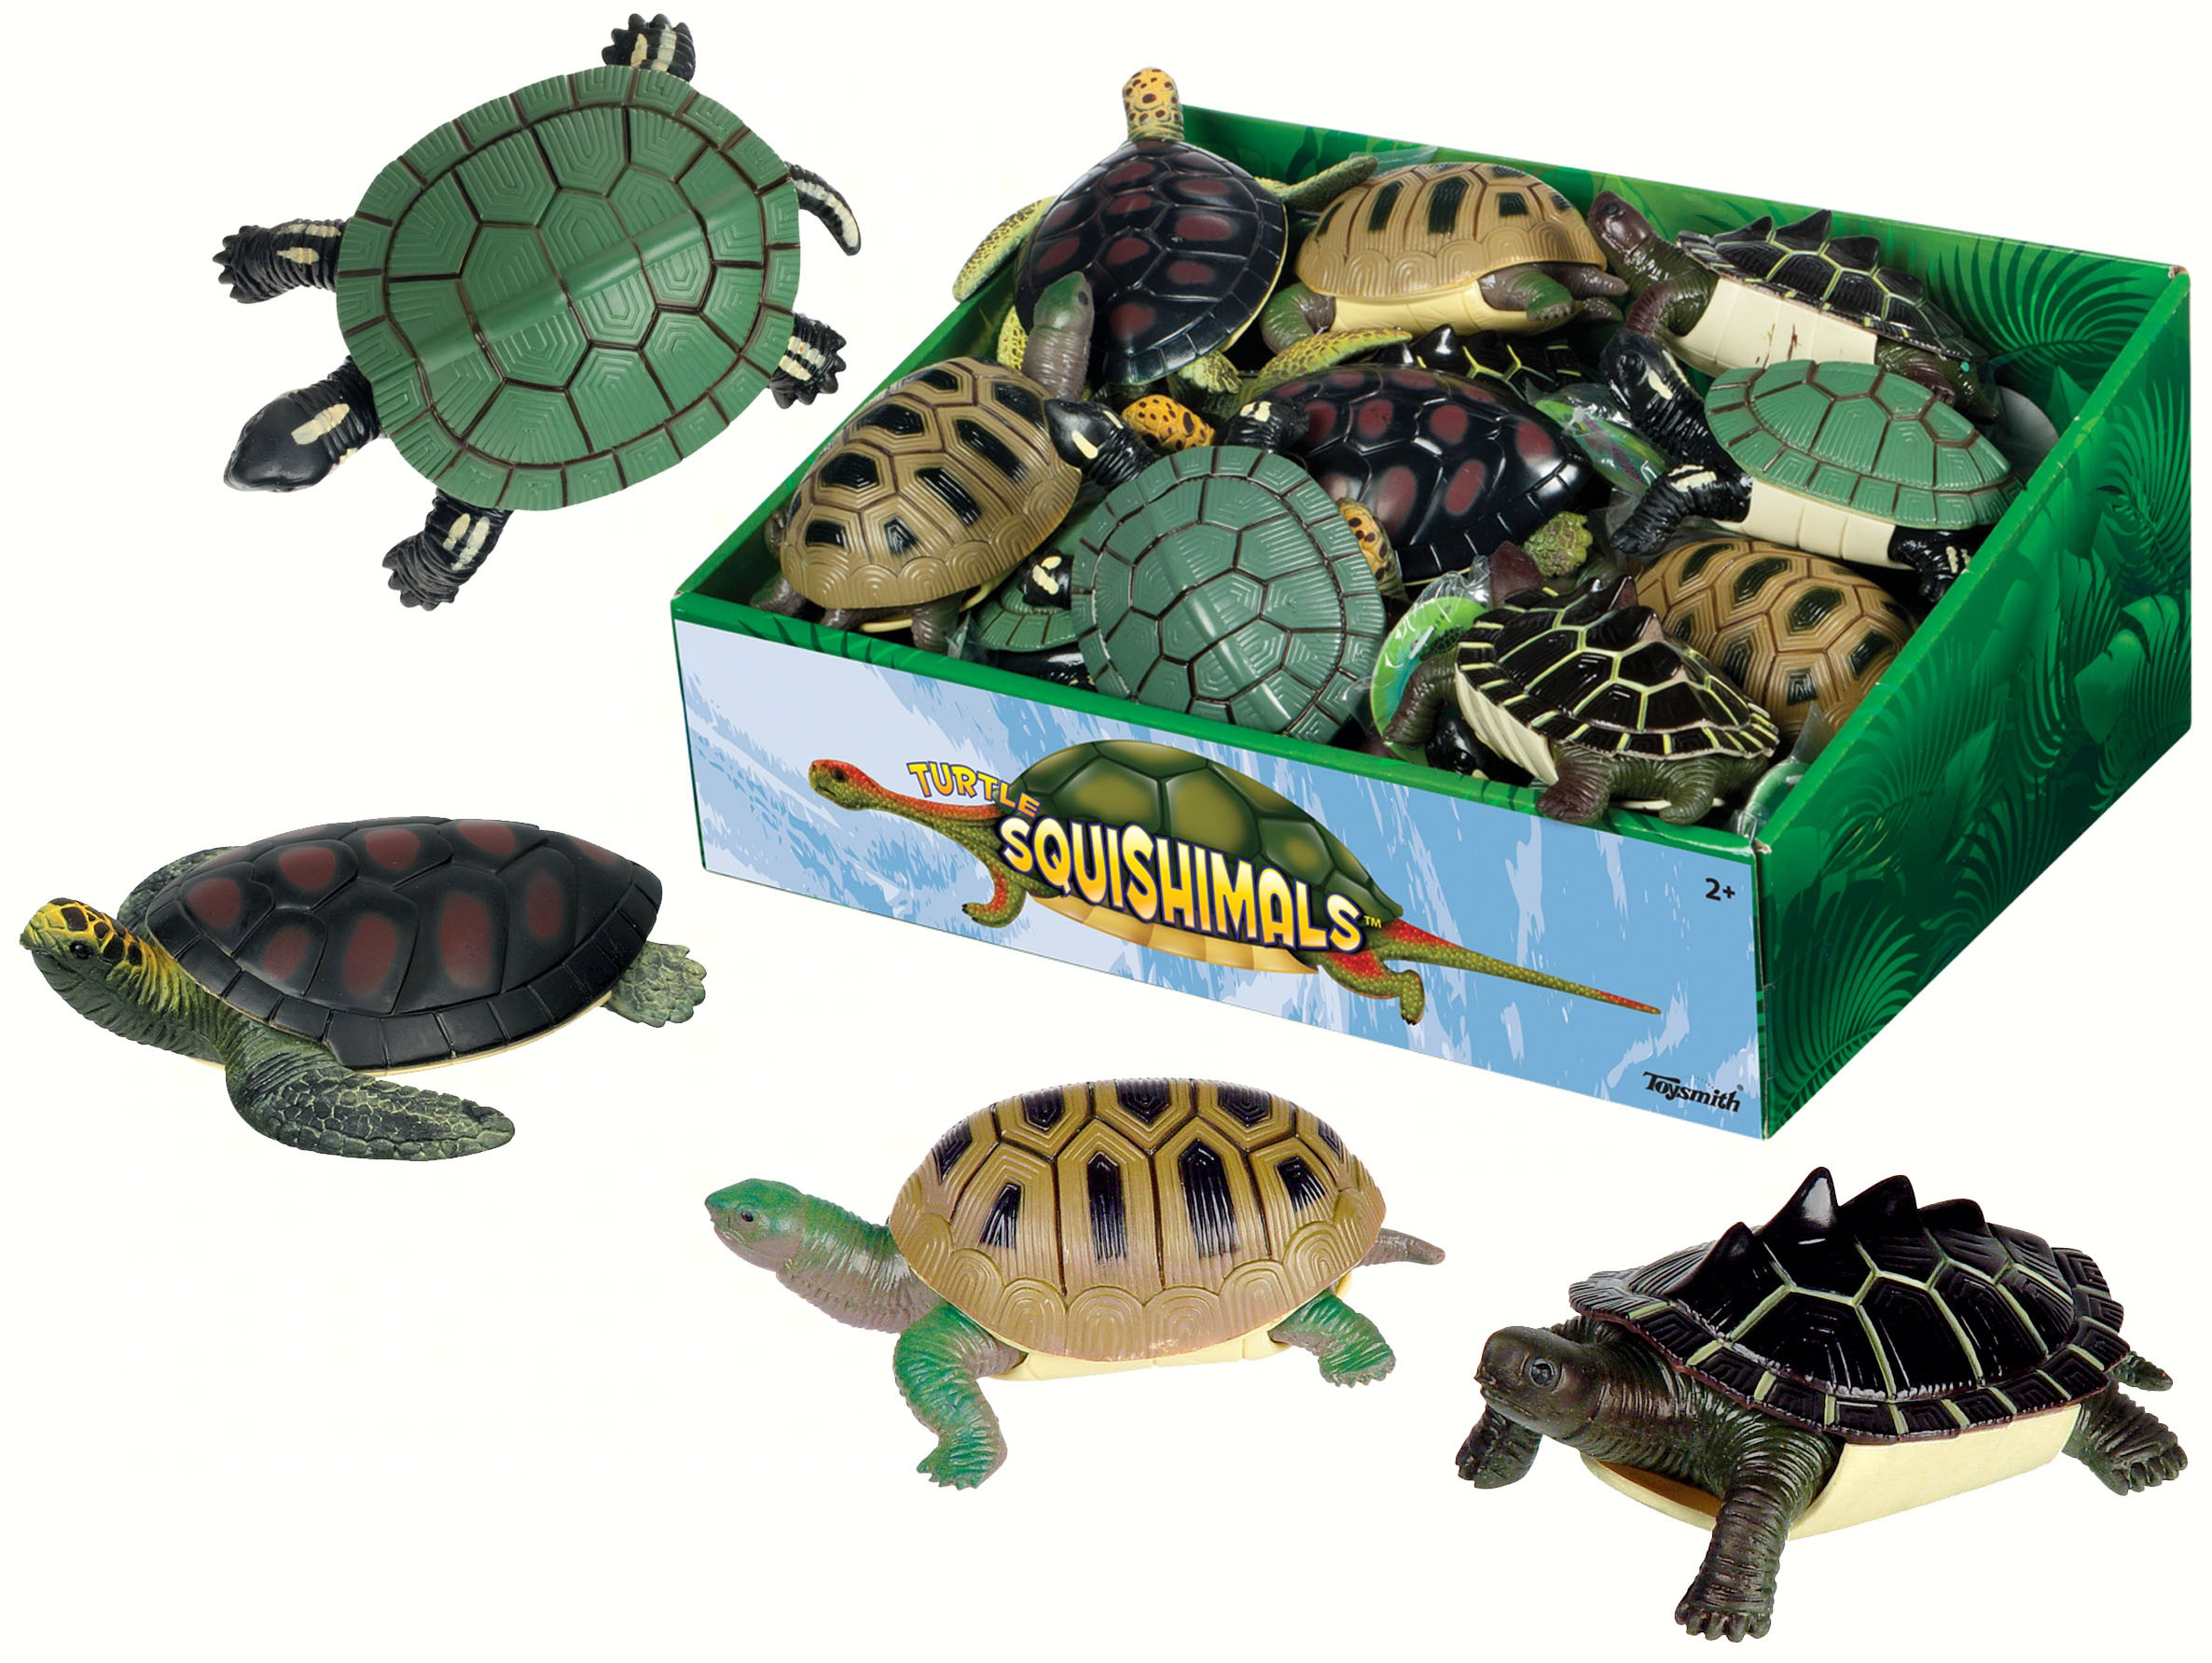 Turtle Squishimals